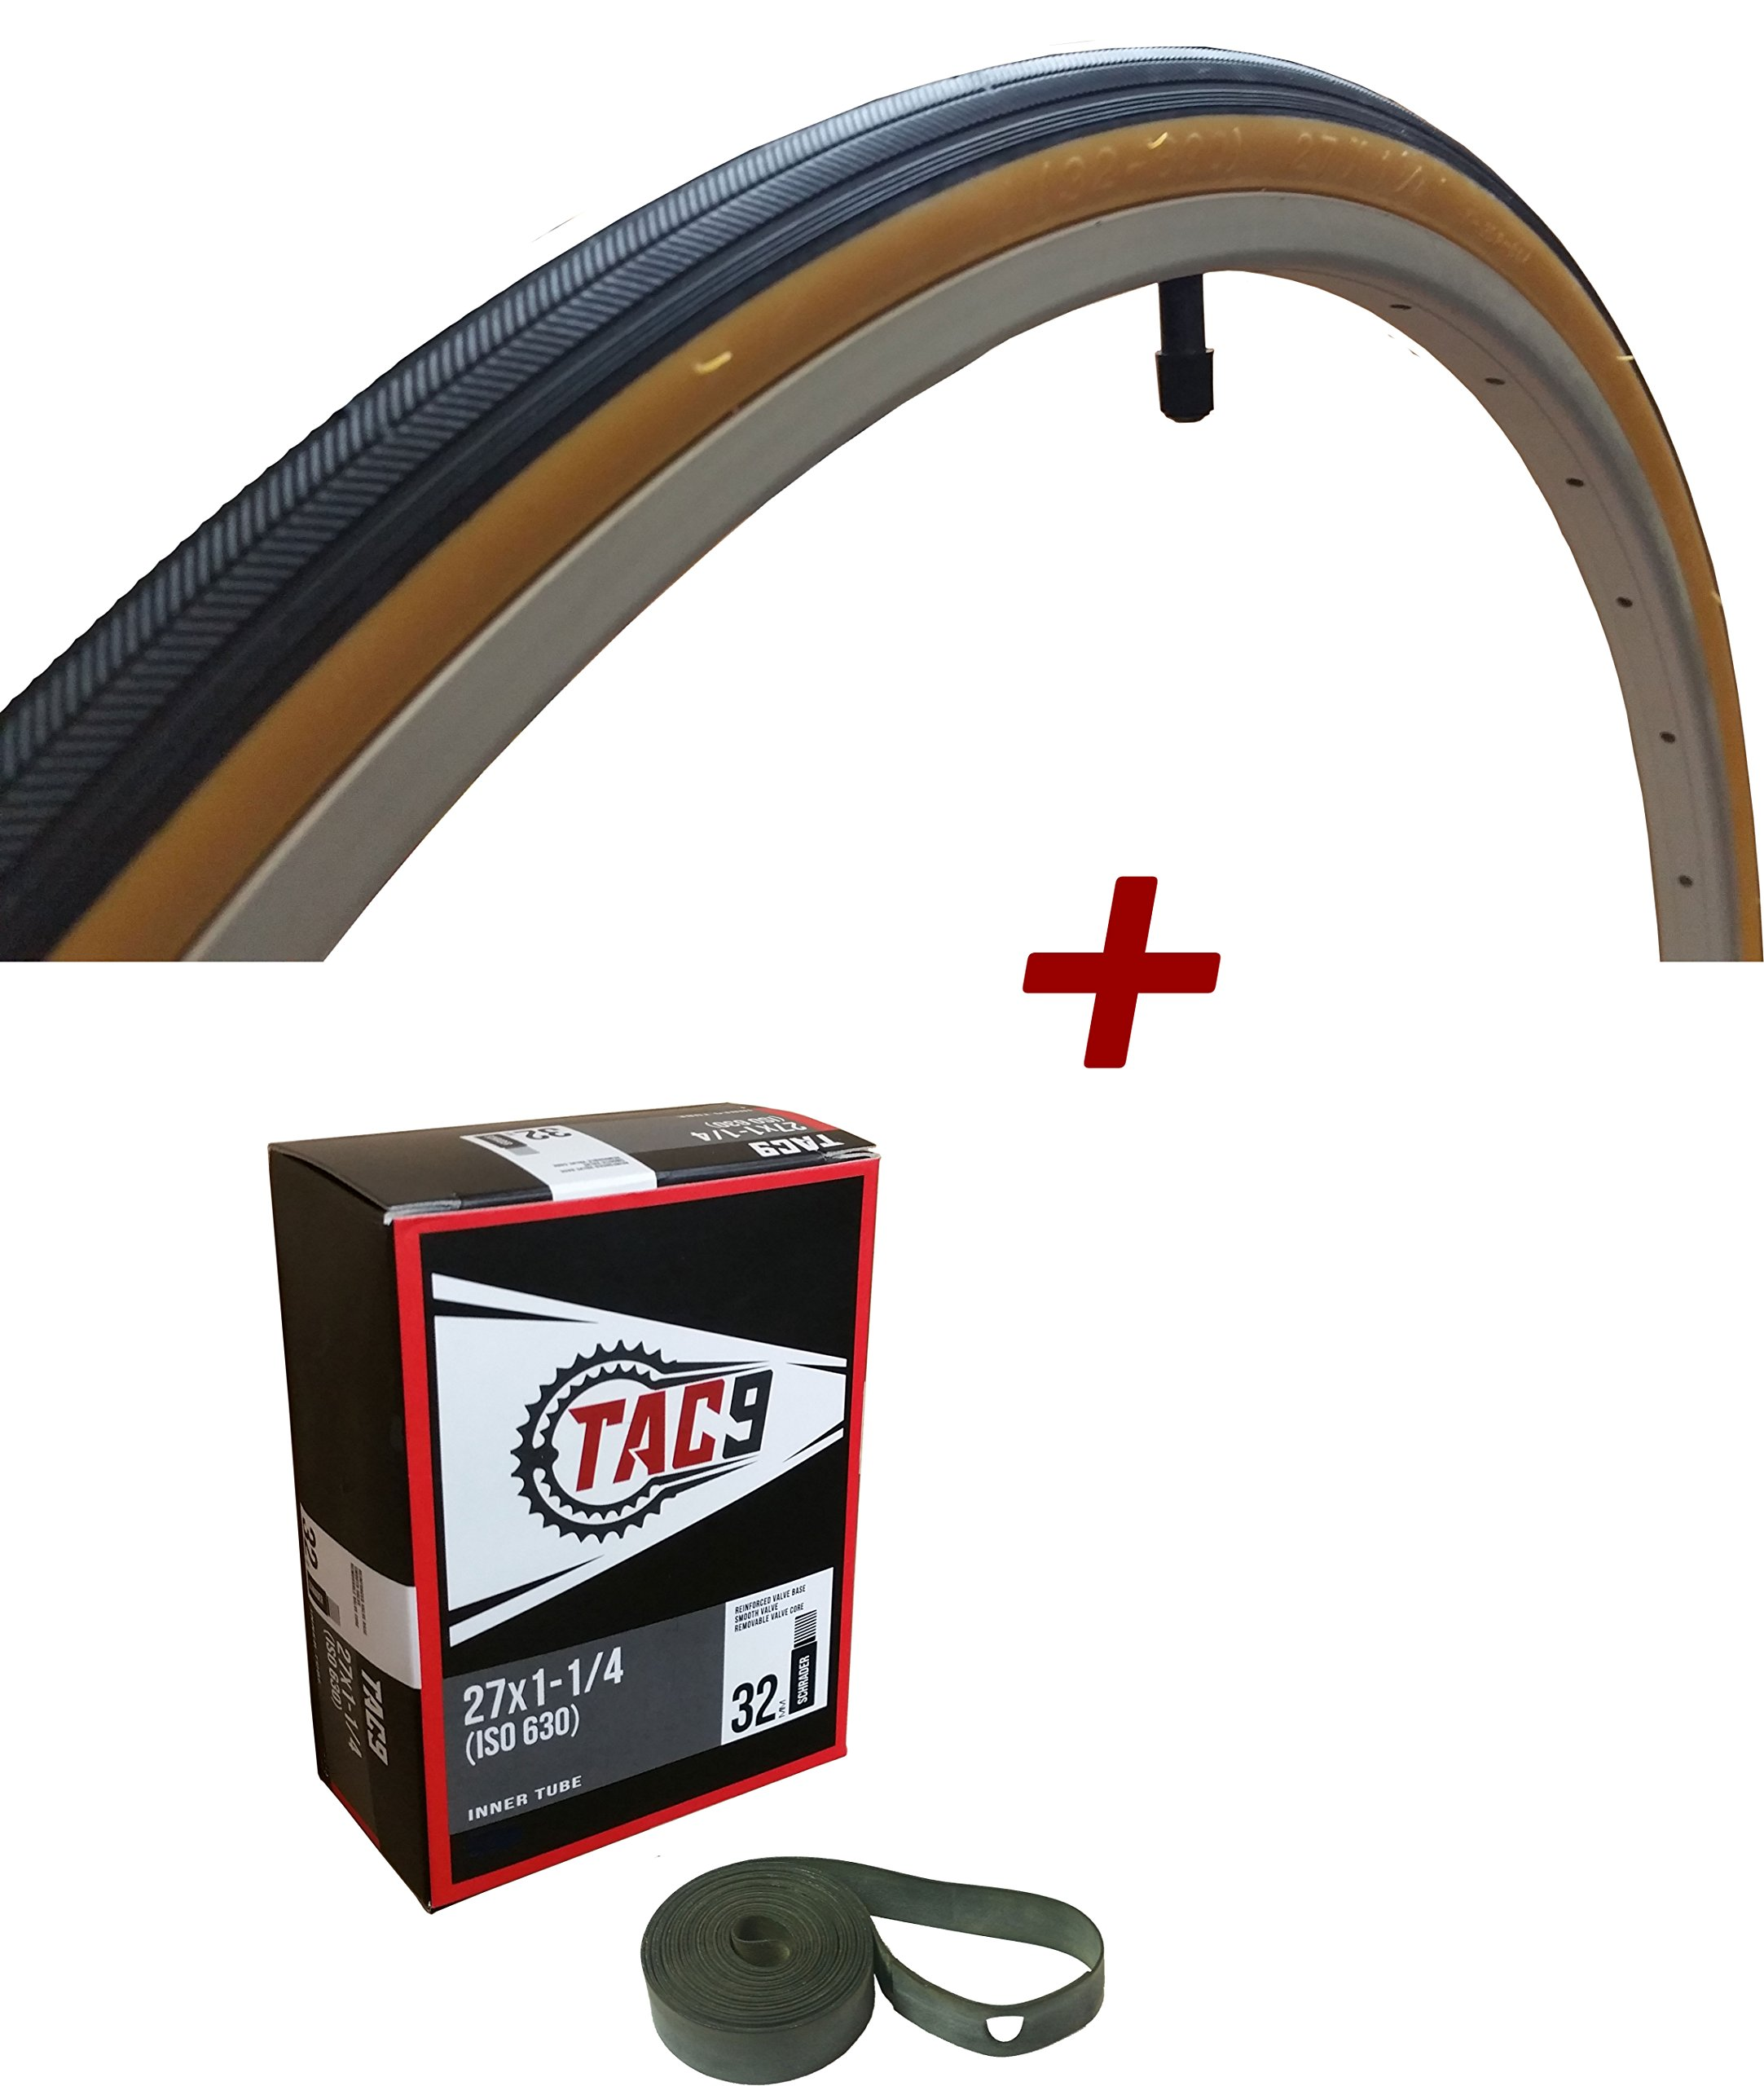 TAC 9 - 27x1-1/4 Bike Tire, Bonus Tube and Rim Strip - Select Gum Wall or Black Wall by TAC 9